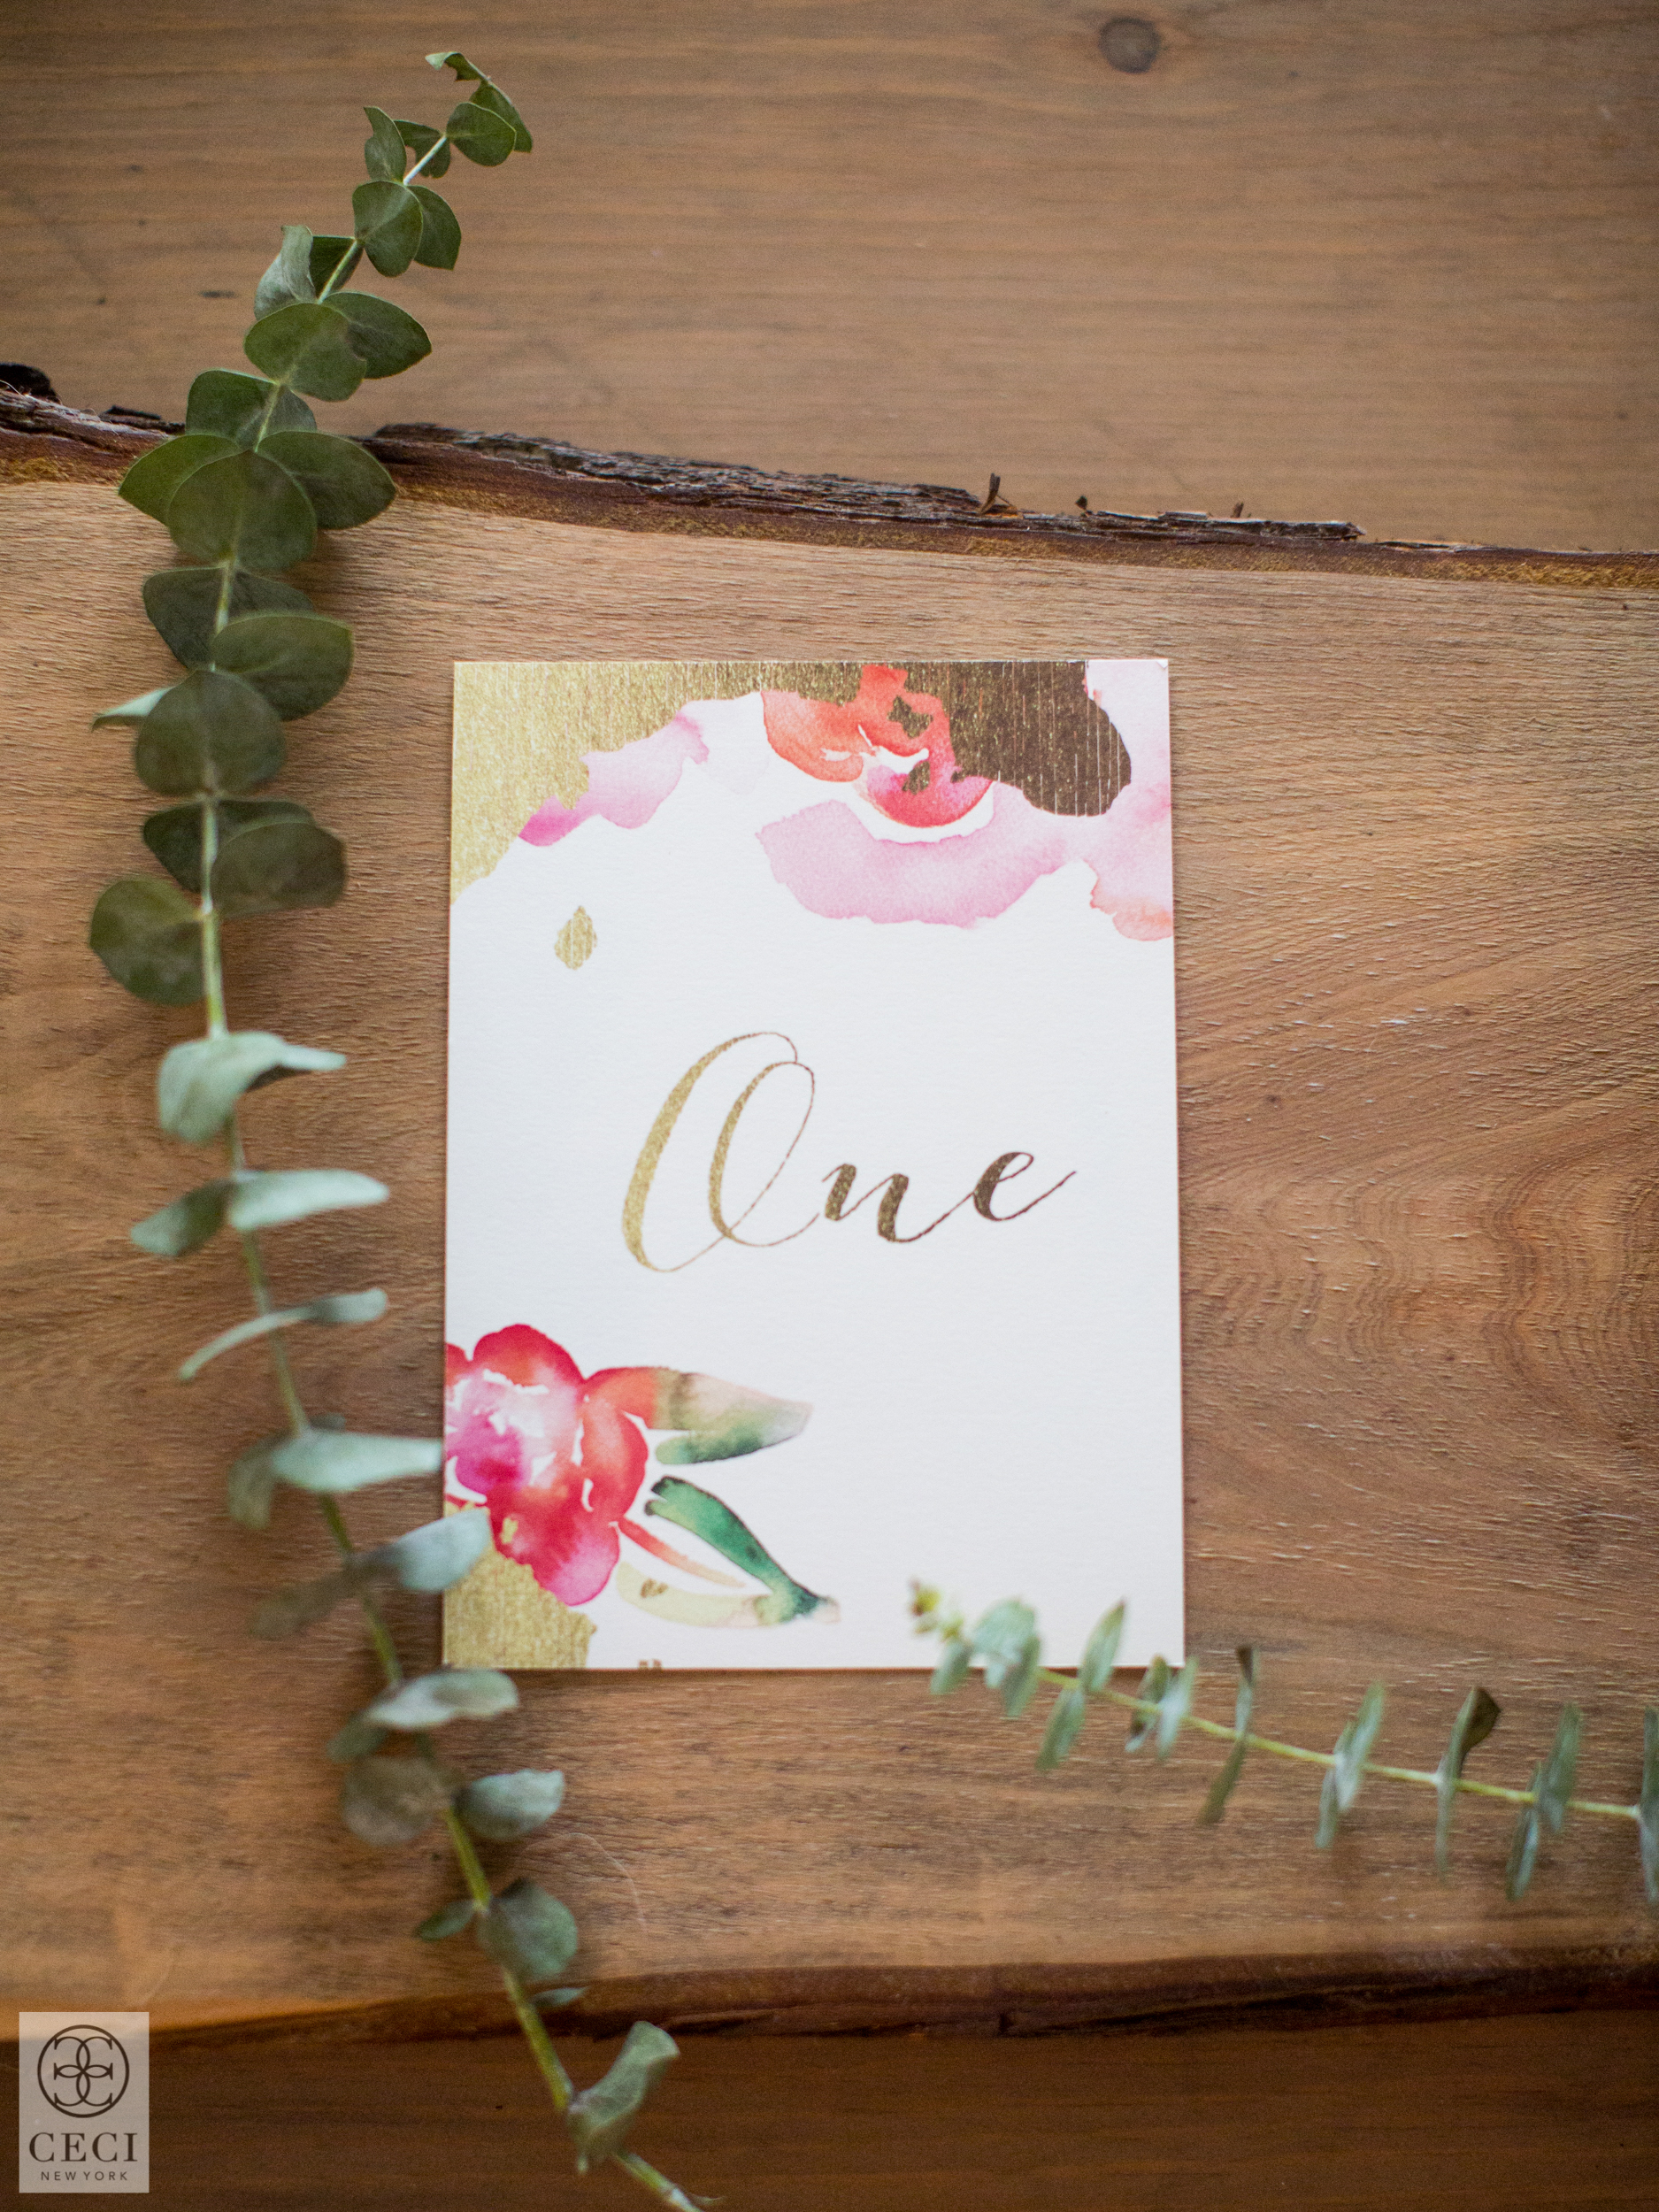 Ceci_New_York_Ceci_Style_Ceci_Johnson_Luxury_Lifestyle_Wedding_Floral_Sara_Kauss_Lucky_Sun_Ranch_Watercolor_Hand_Painted_Inspiration_Design_Custom_Couture_Personalized_Invitations_-11.jpg